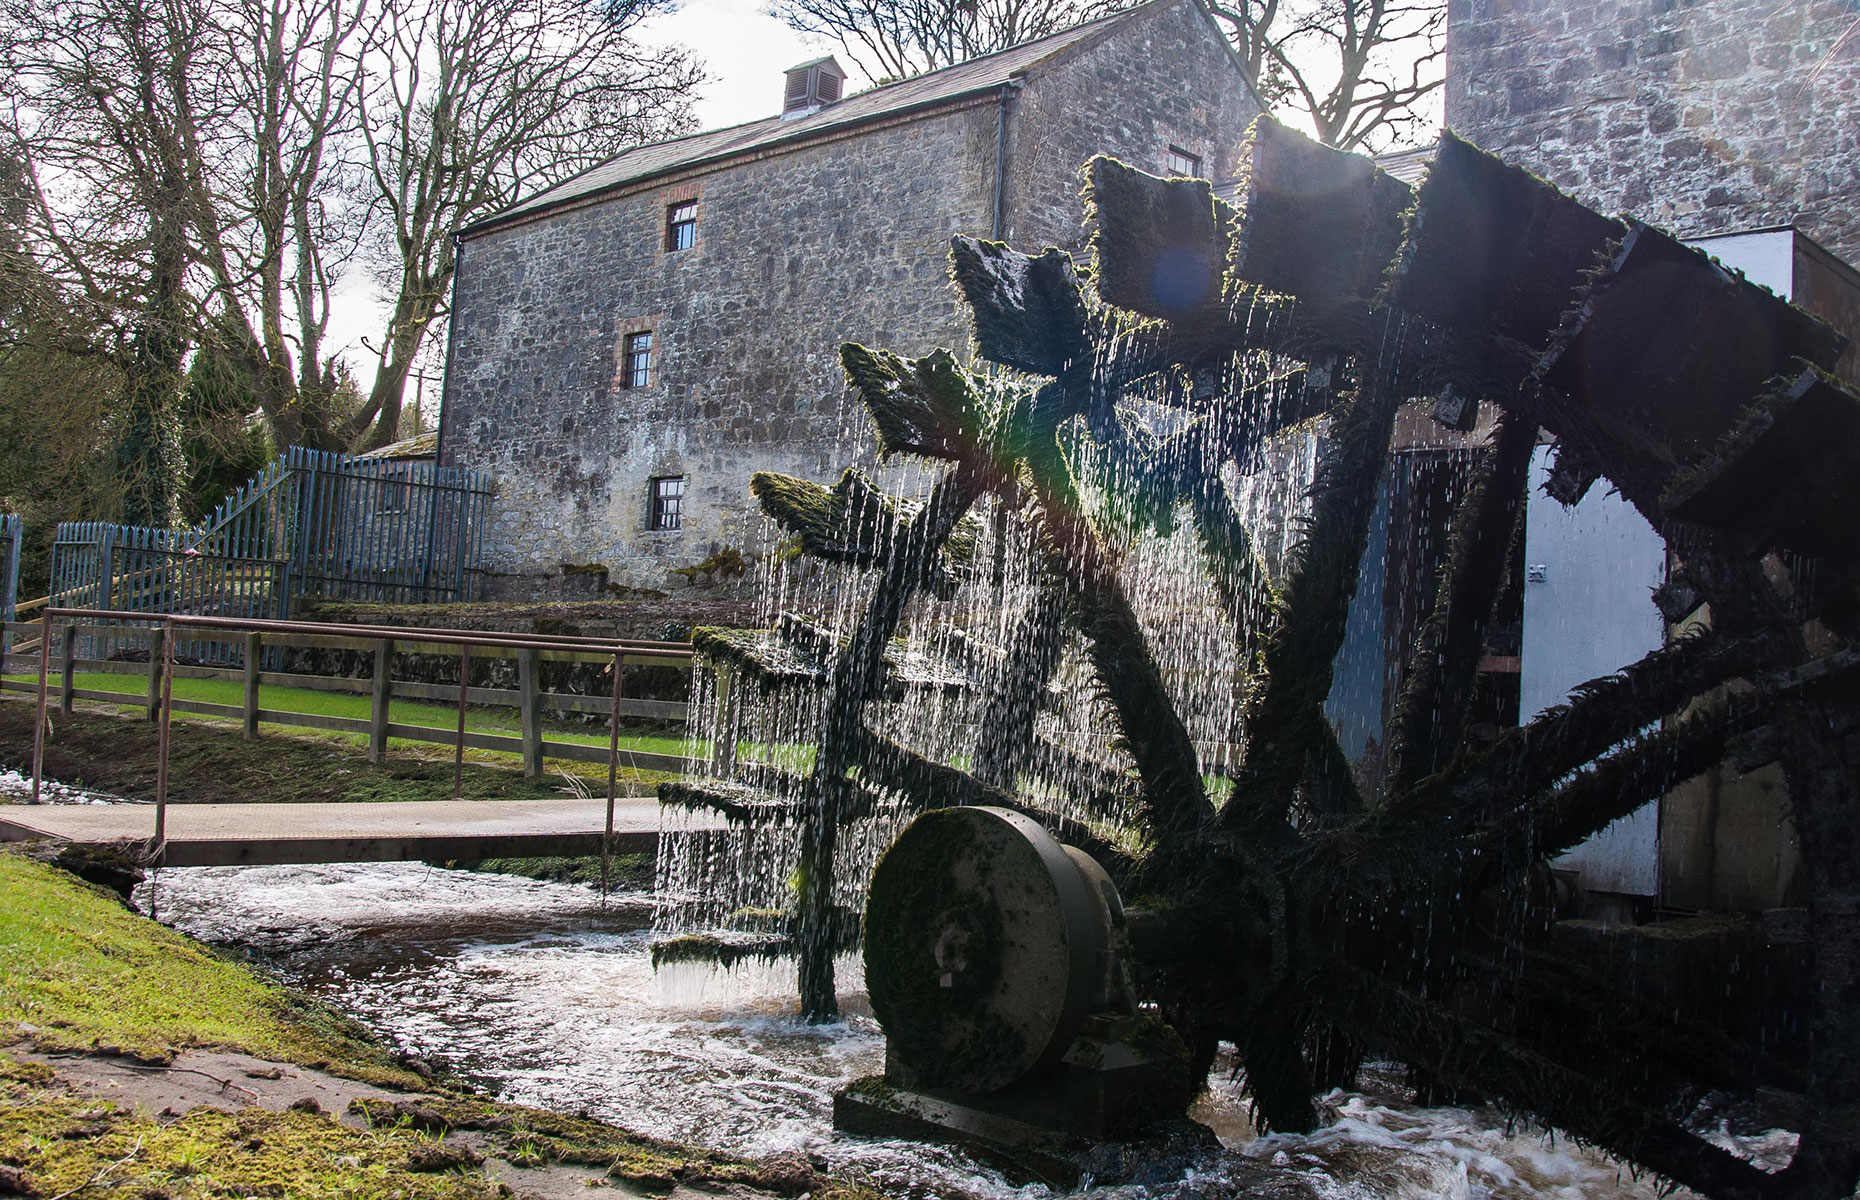 Mill flour to take away at Martry Mill, Boyne Valley, Ireland, with its splendid waterwheel